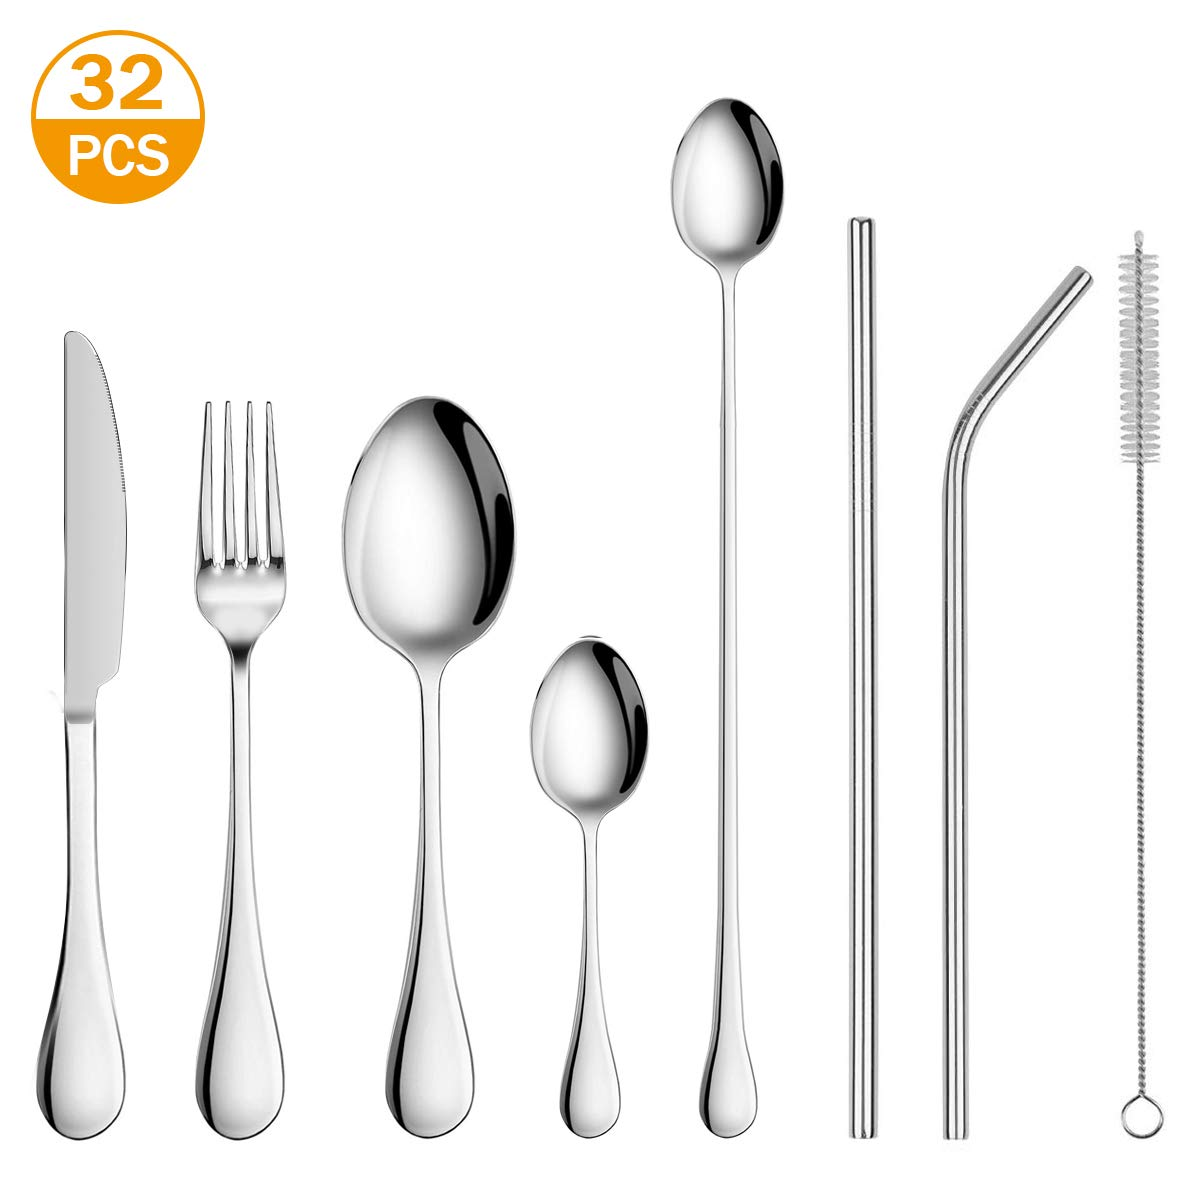 Silverware Flatware Cutlery Set,Portable Utensils LPOLER 32 Pieces Stainless Steel Utensils Service for 4,Include Knife,Fork,Spoon,Straw and Cleaning Brush,Mirror Polished,Dishwasher Safe